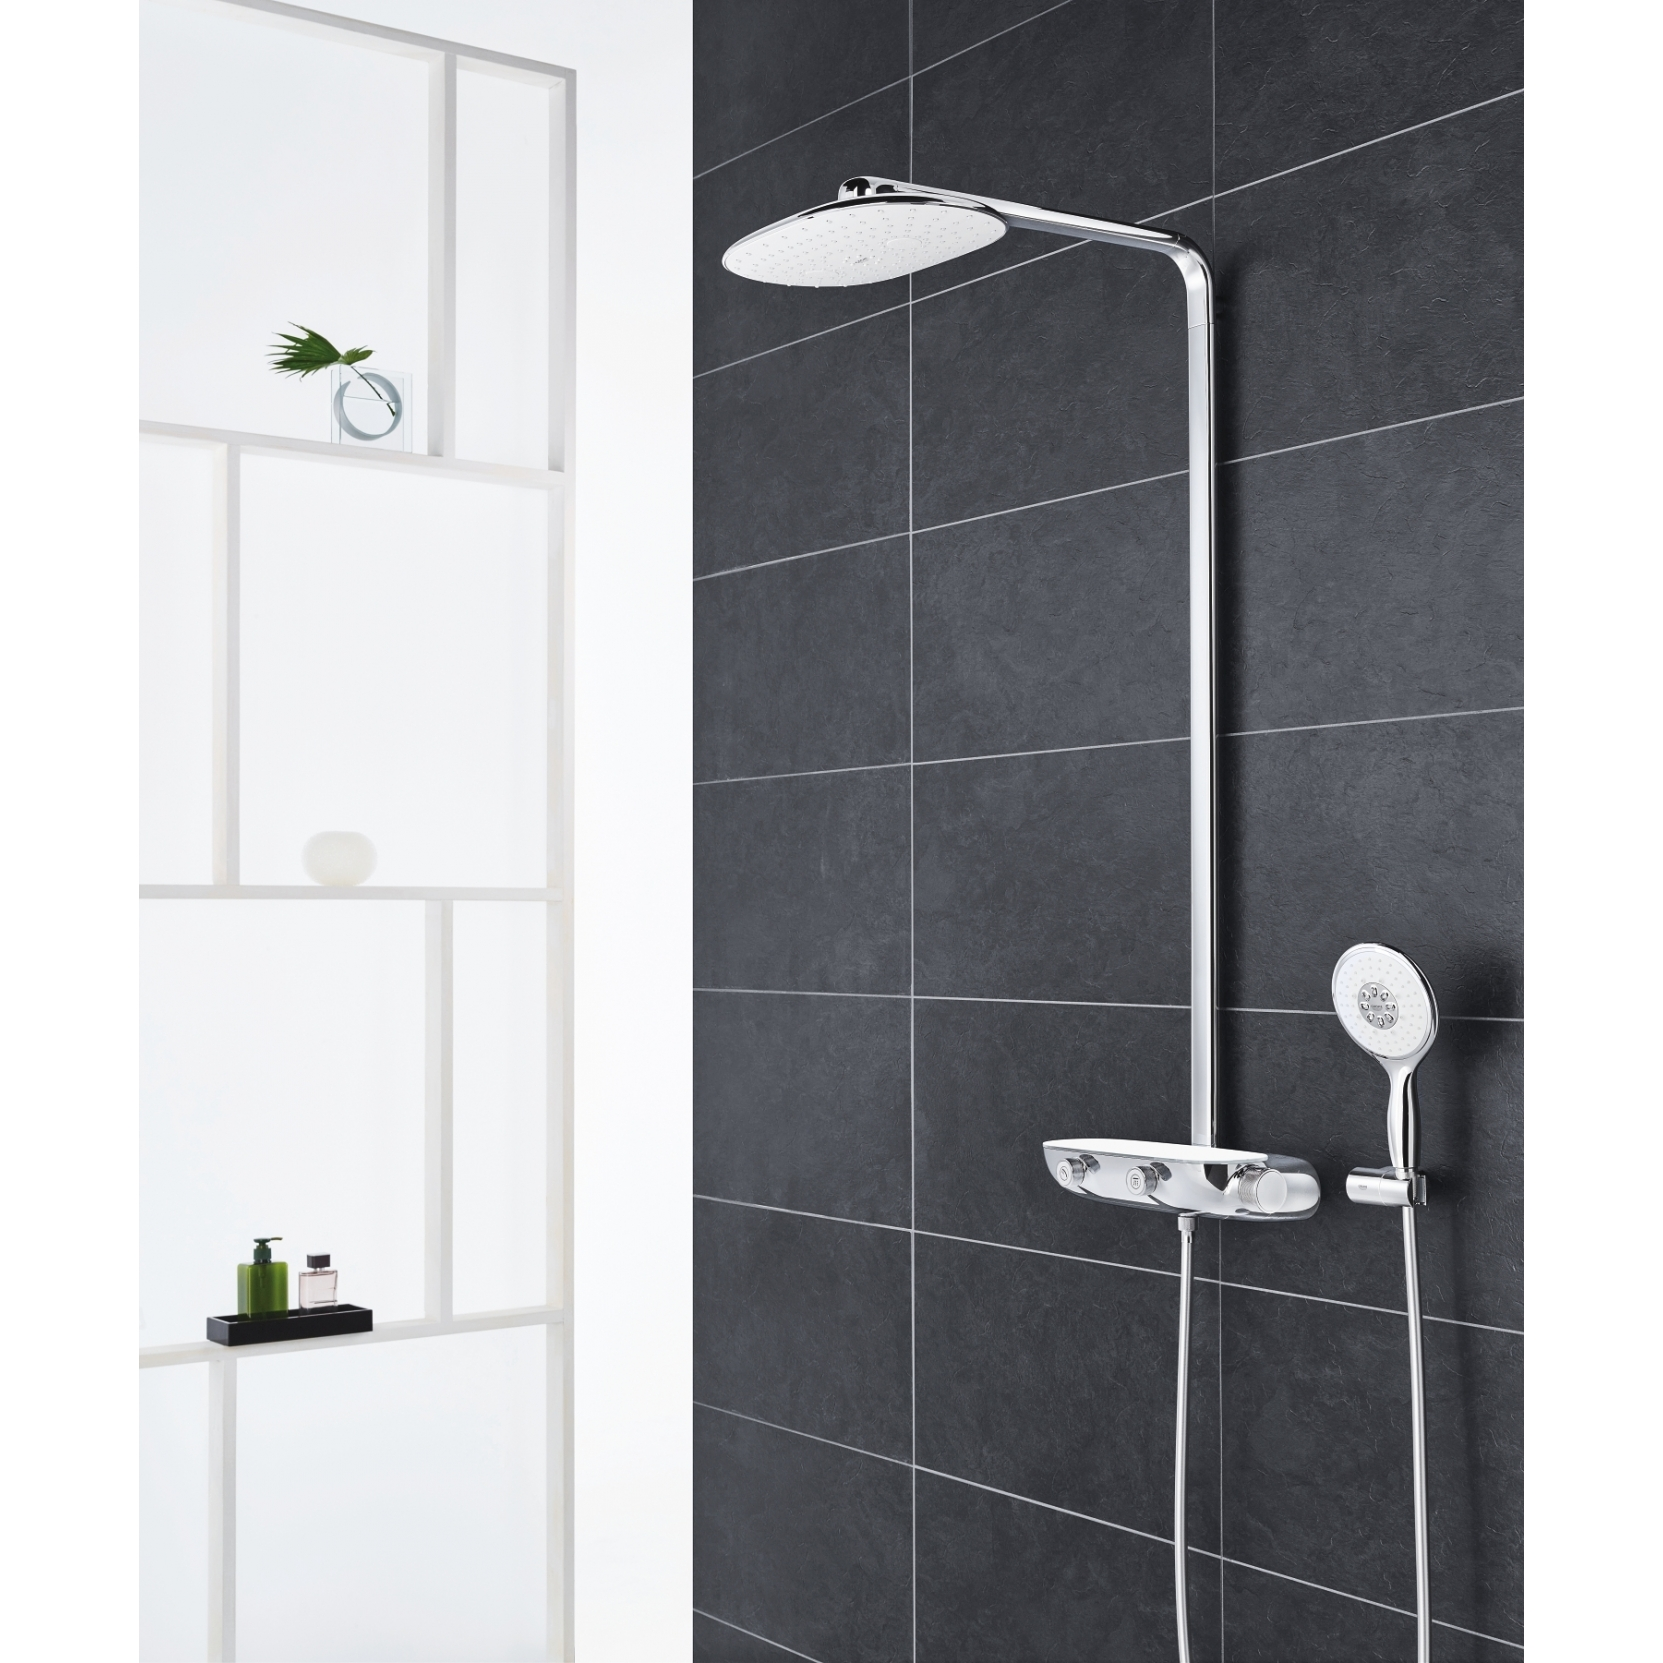 grohe rainshower system smartcontrol with thermostat tattahome. Black Bedroom Furniture Sets. Home Design Ideas